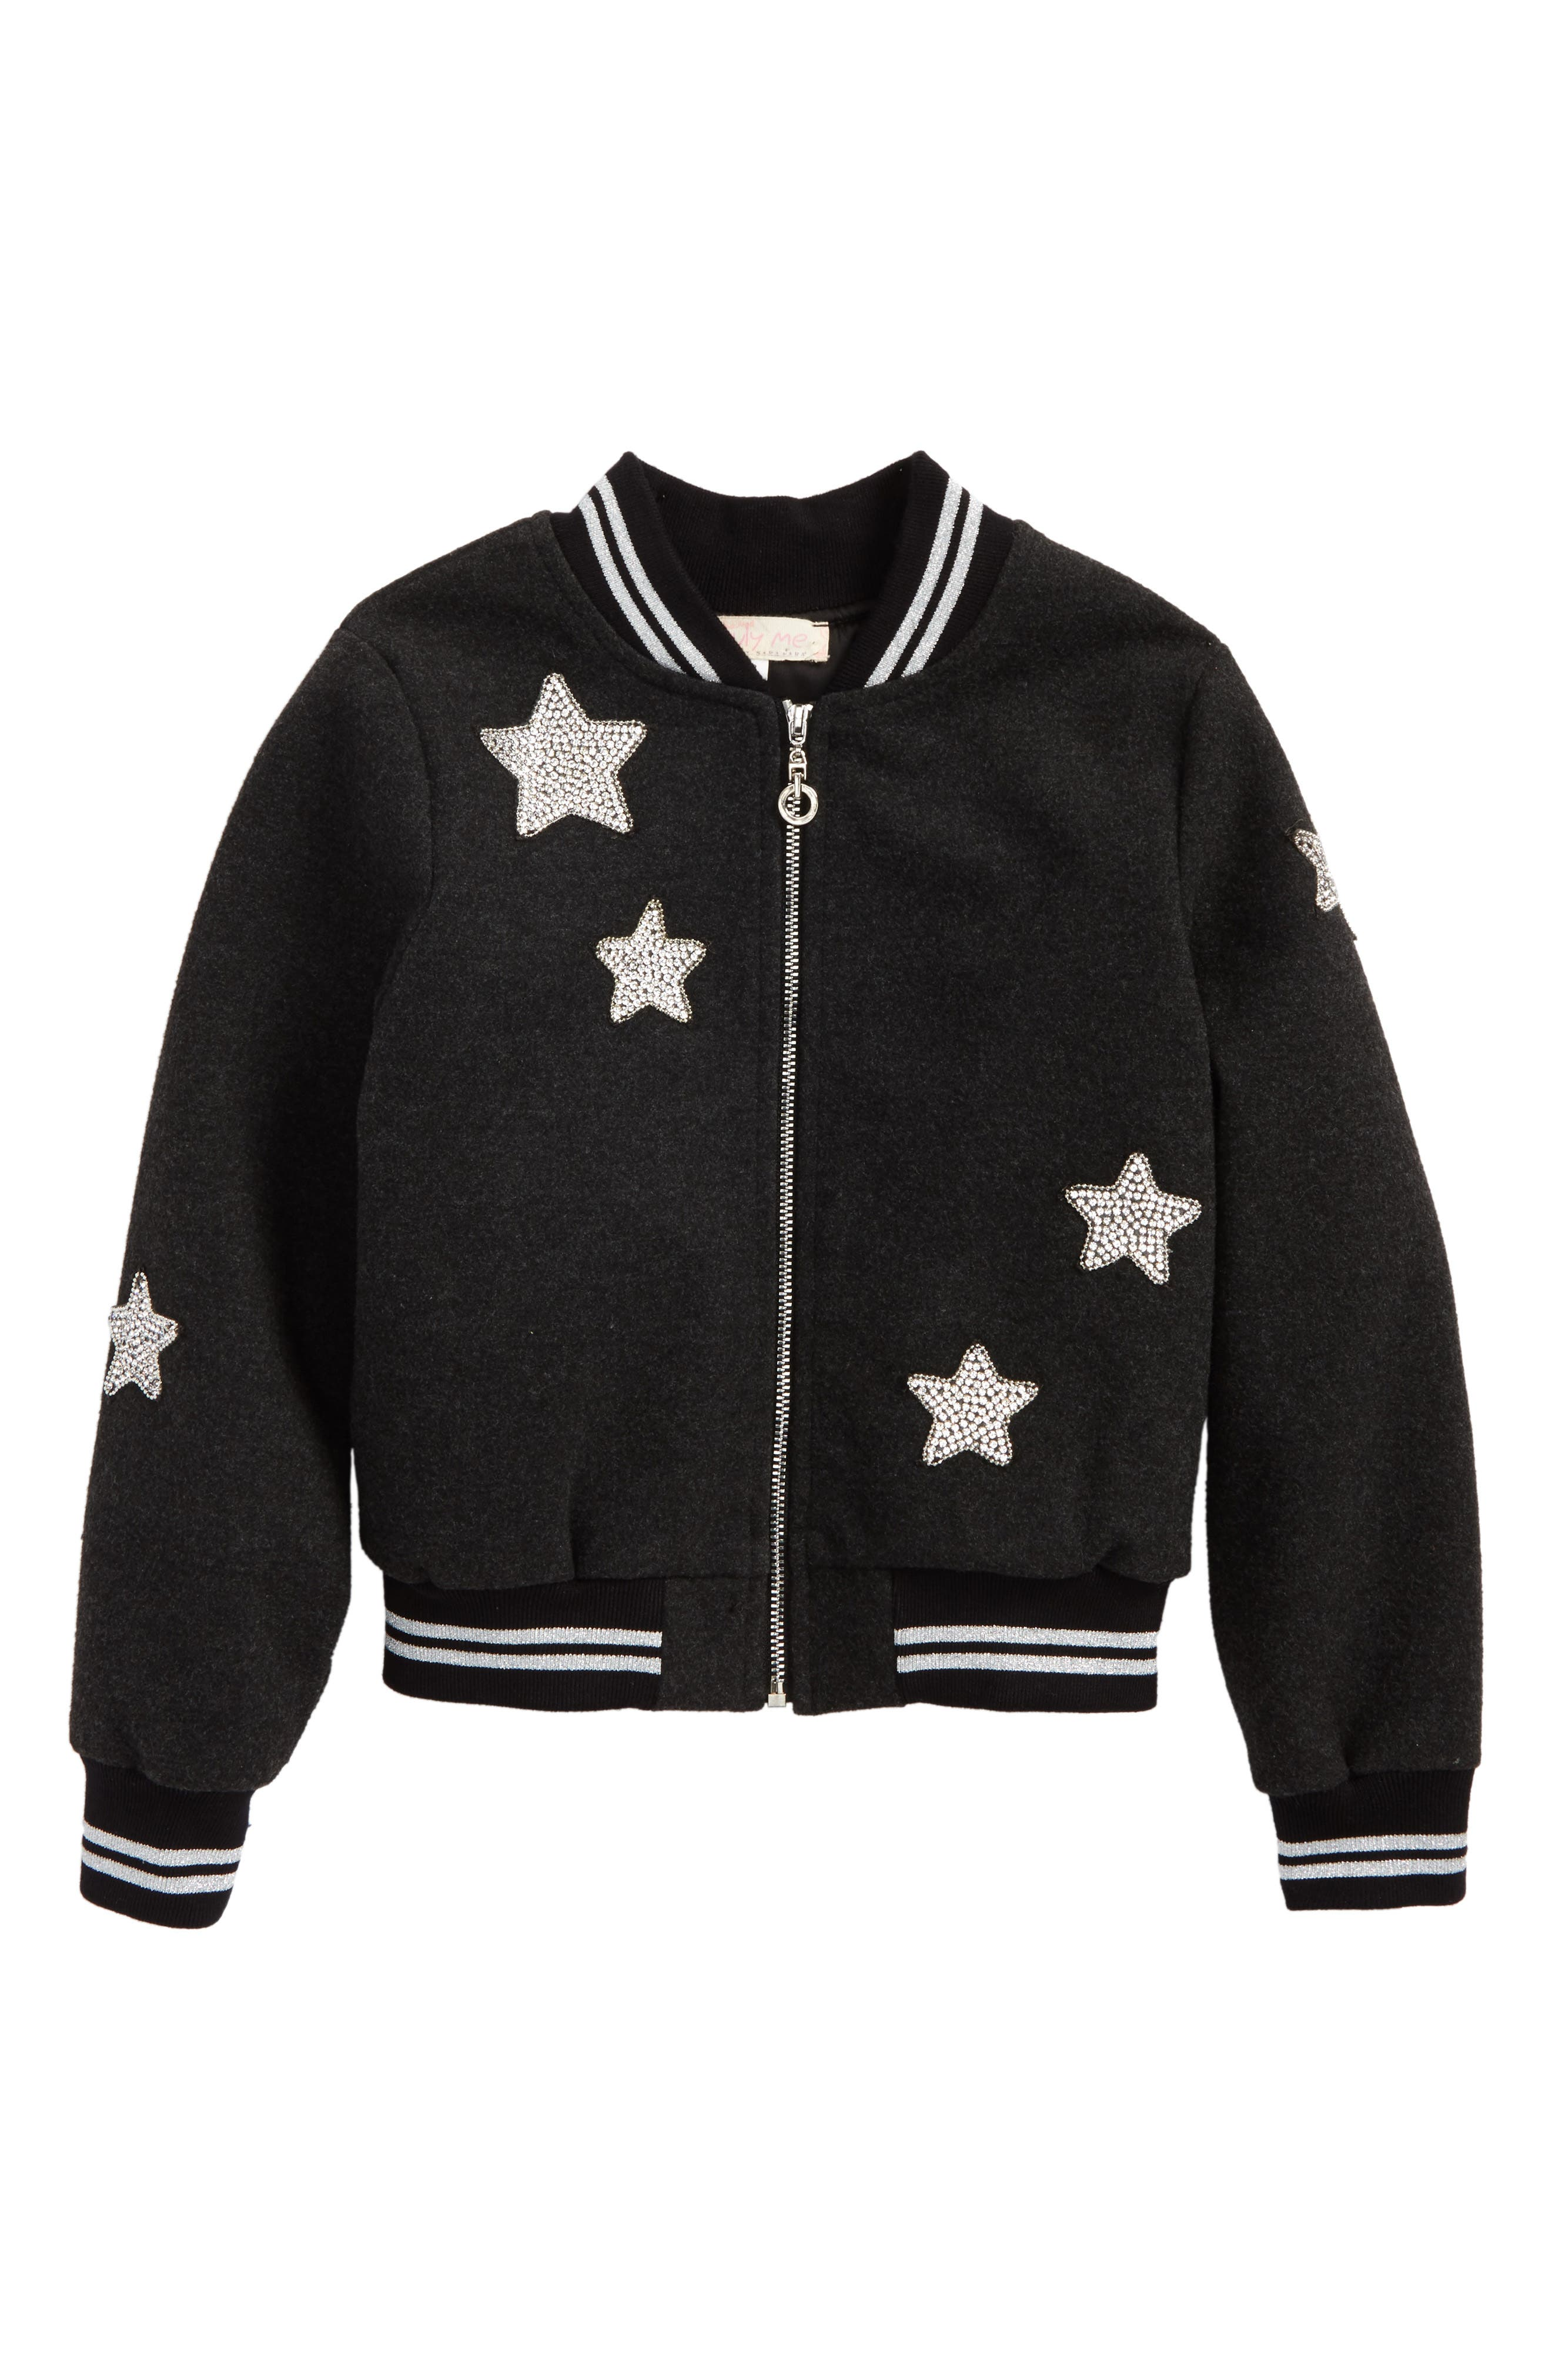 Main Image - Truly Me Star Patch Bomber Jacket (Toddler Girls & Little Girls)